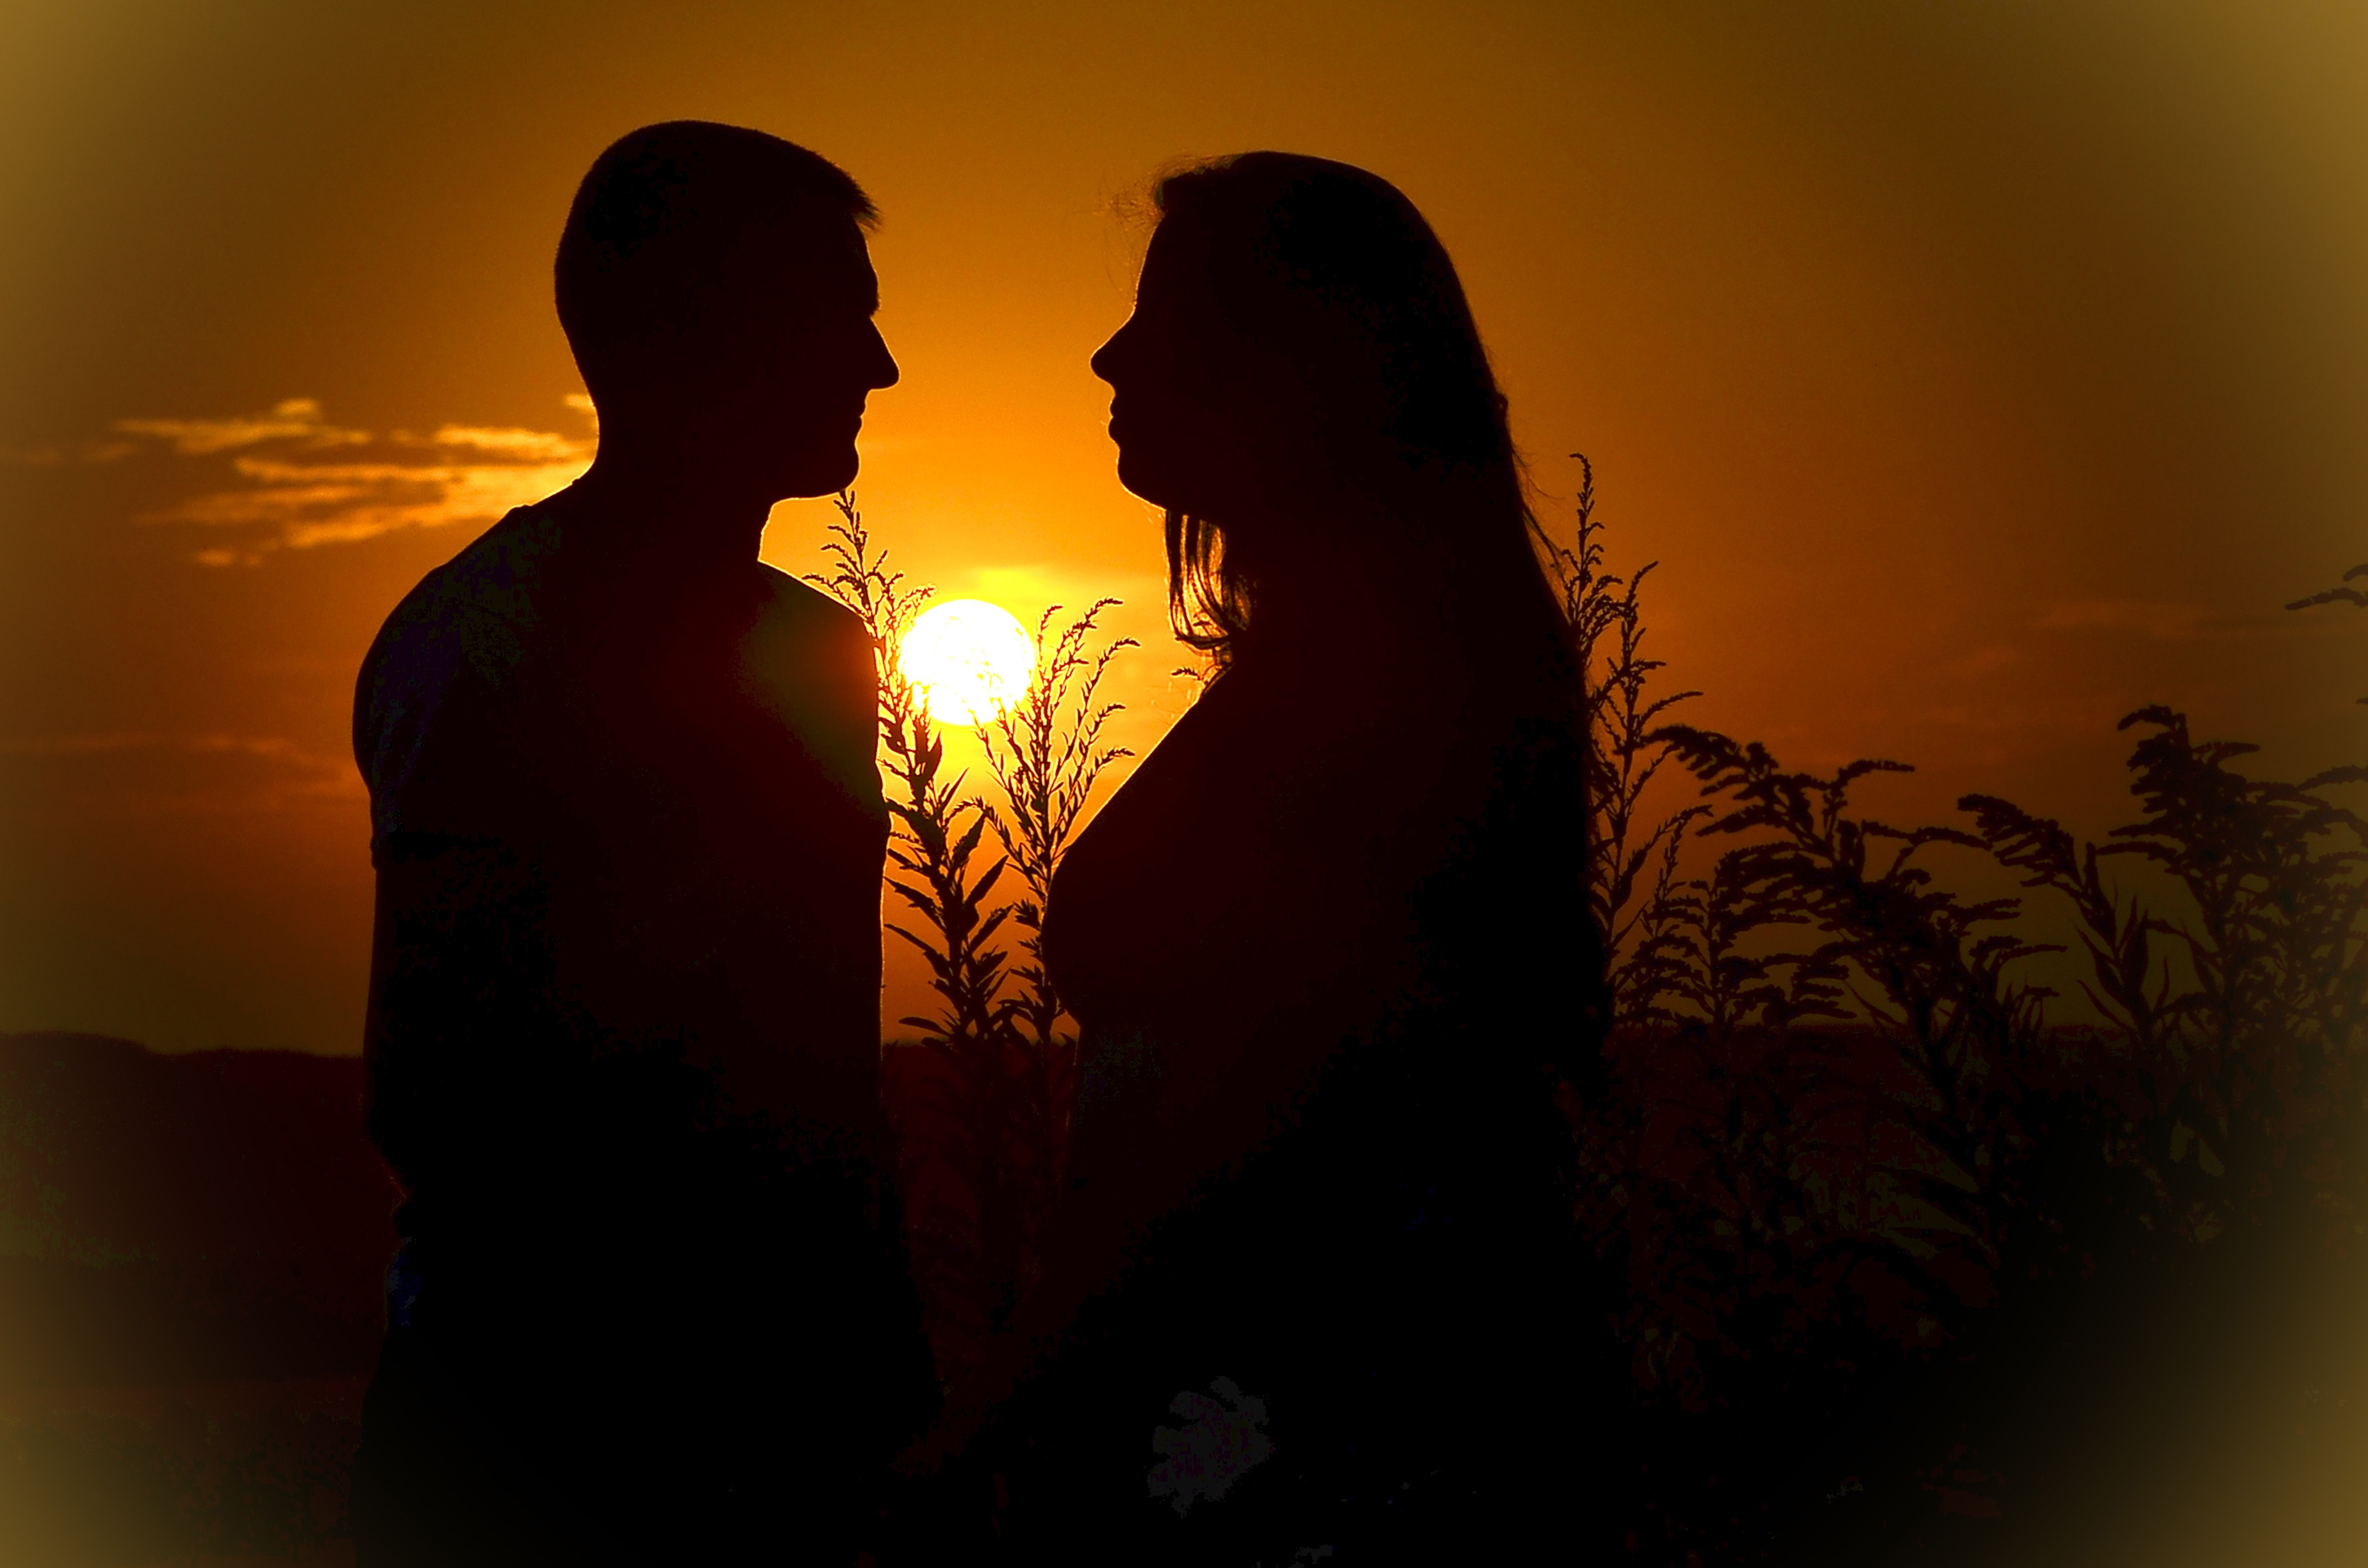 couple-love-sunset-silhouettes-160764.jpeg (3696×2448)